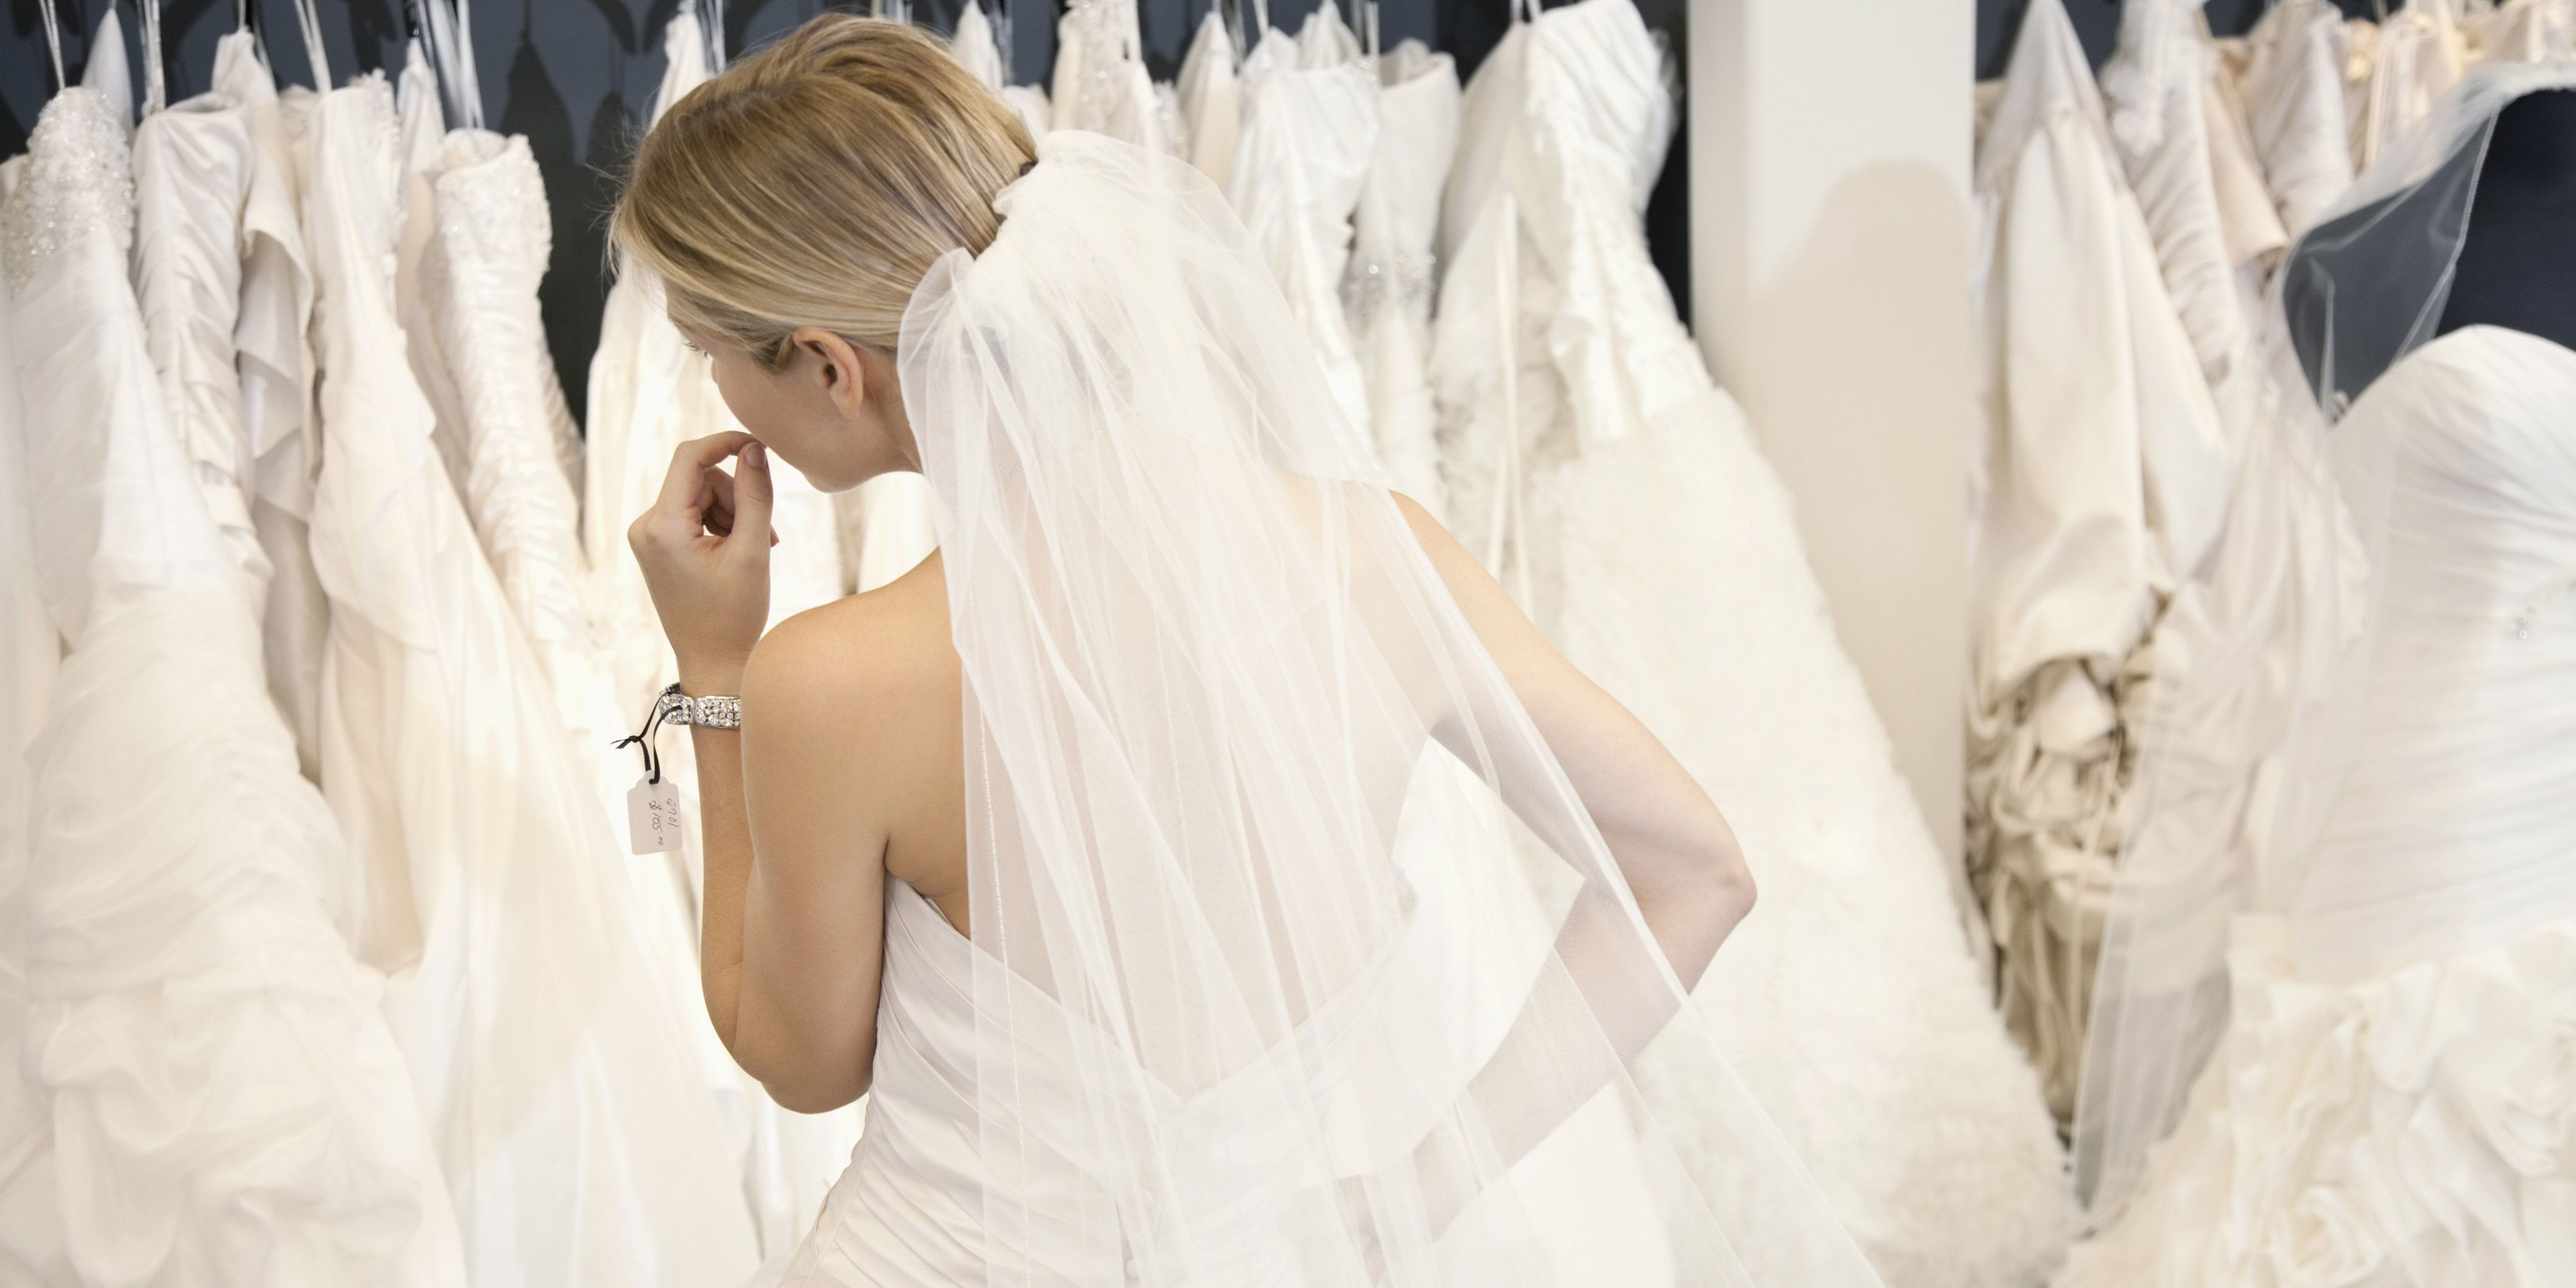 a4eb020434bb Wedding Gown Shopping Etiquette - Rules To Keep In Mind Before ...